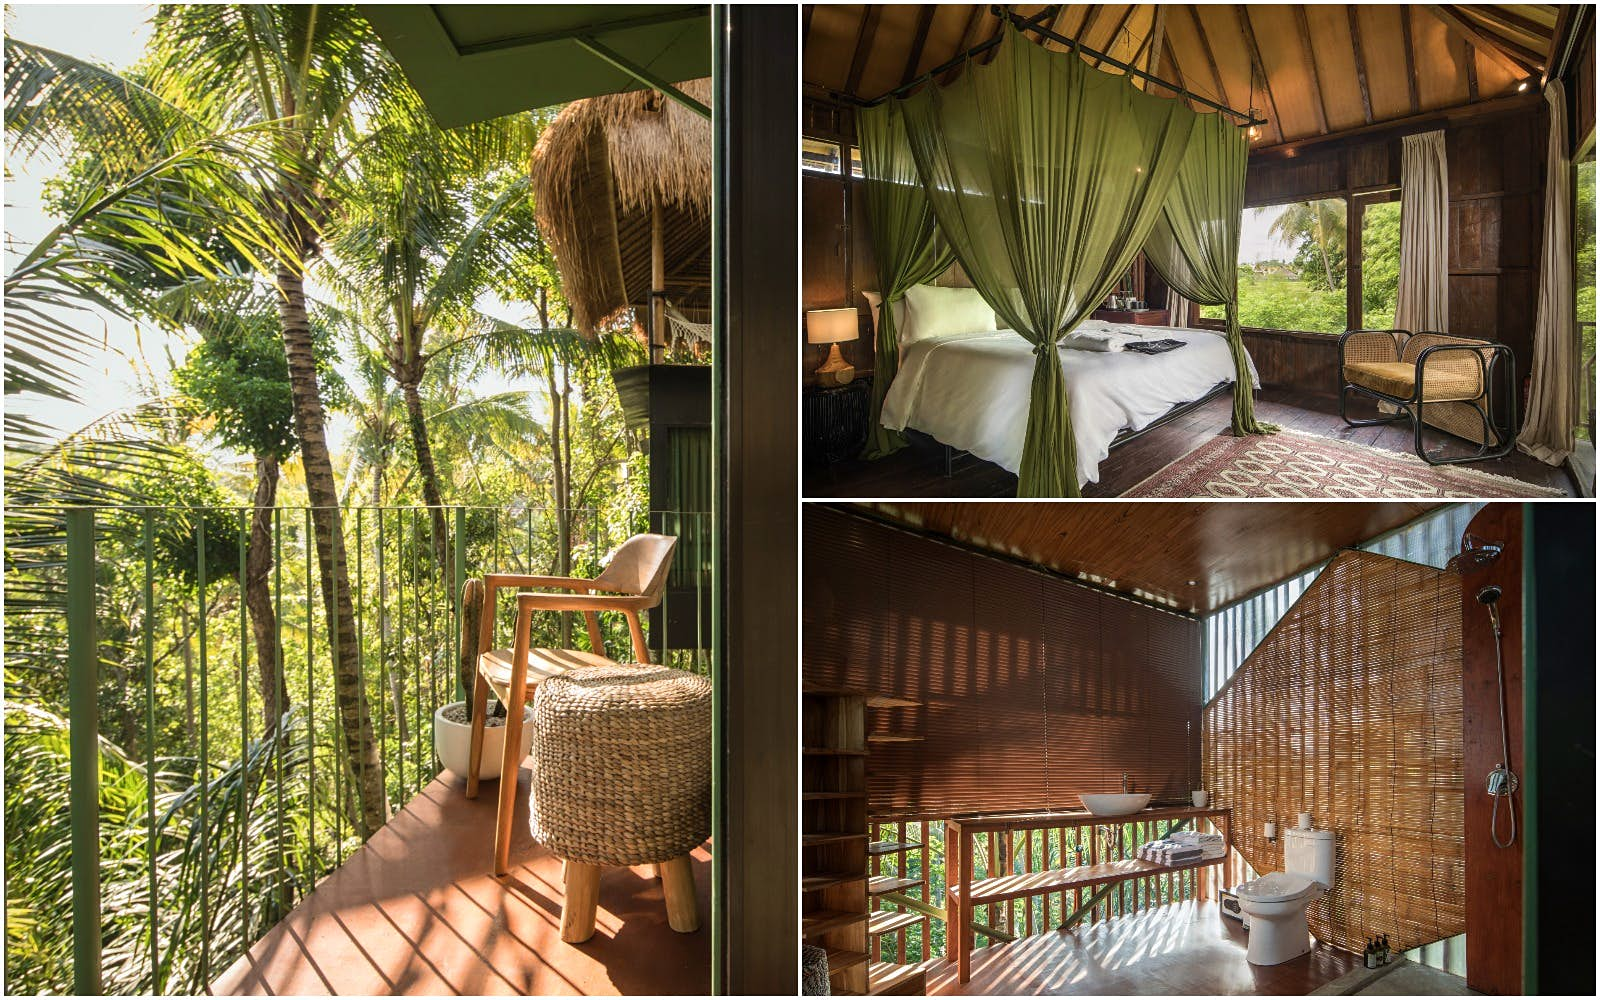 A collage of images from the interior of a treetop lodge in Bali